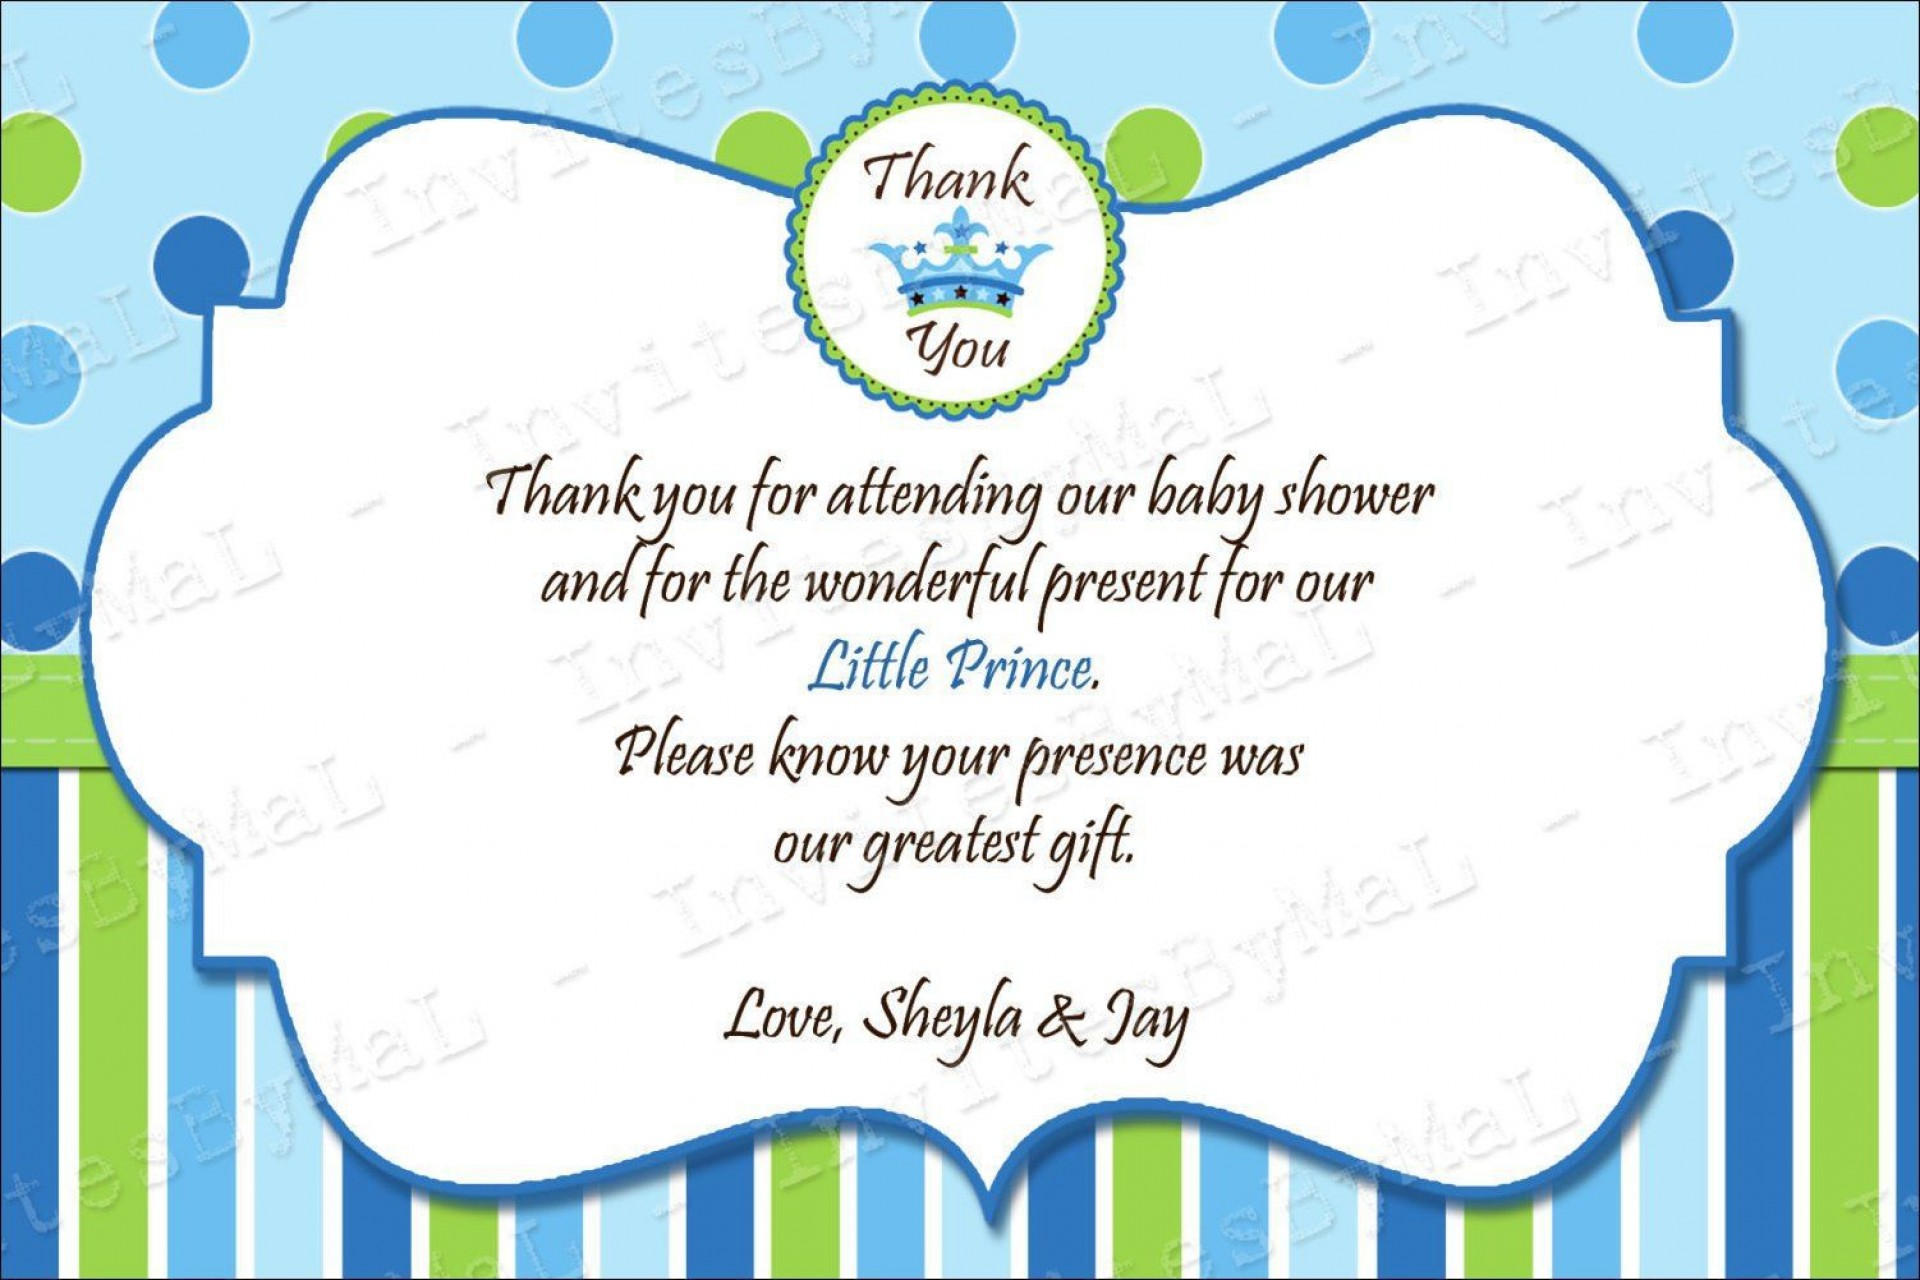 008 Sensational Thank You Card Wording Baby Shower High Definition  Note For Money Someone Who Didn't Attend Hostes1920